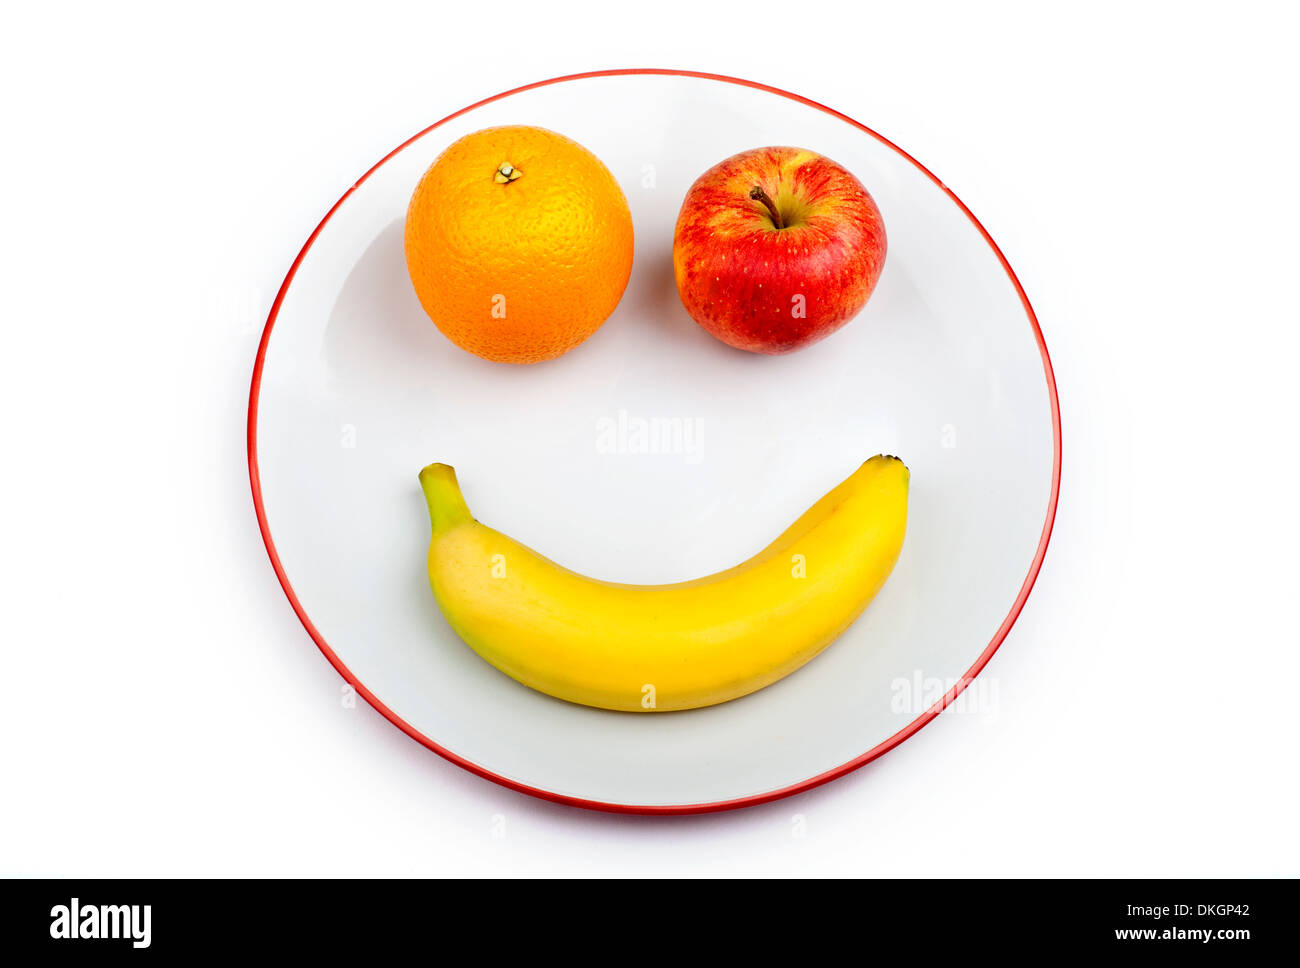 Three different pieces of fruit making up a smiling face on a plate over a white background. - Stock Image